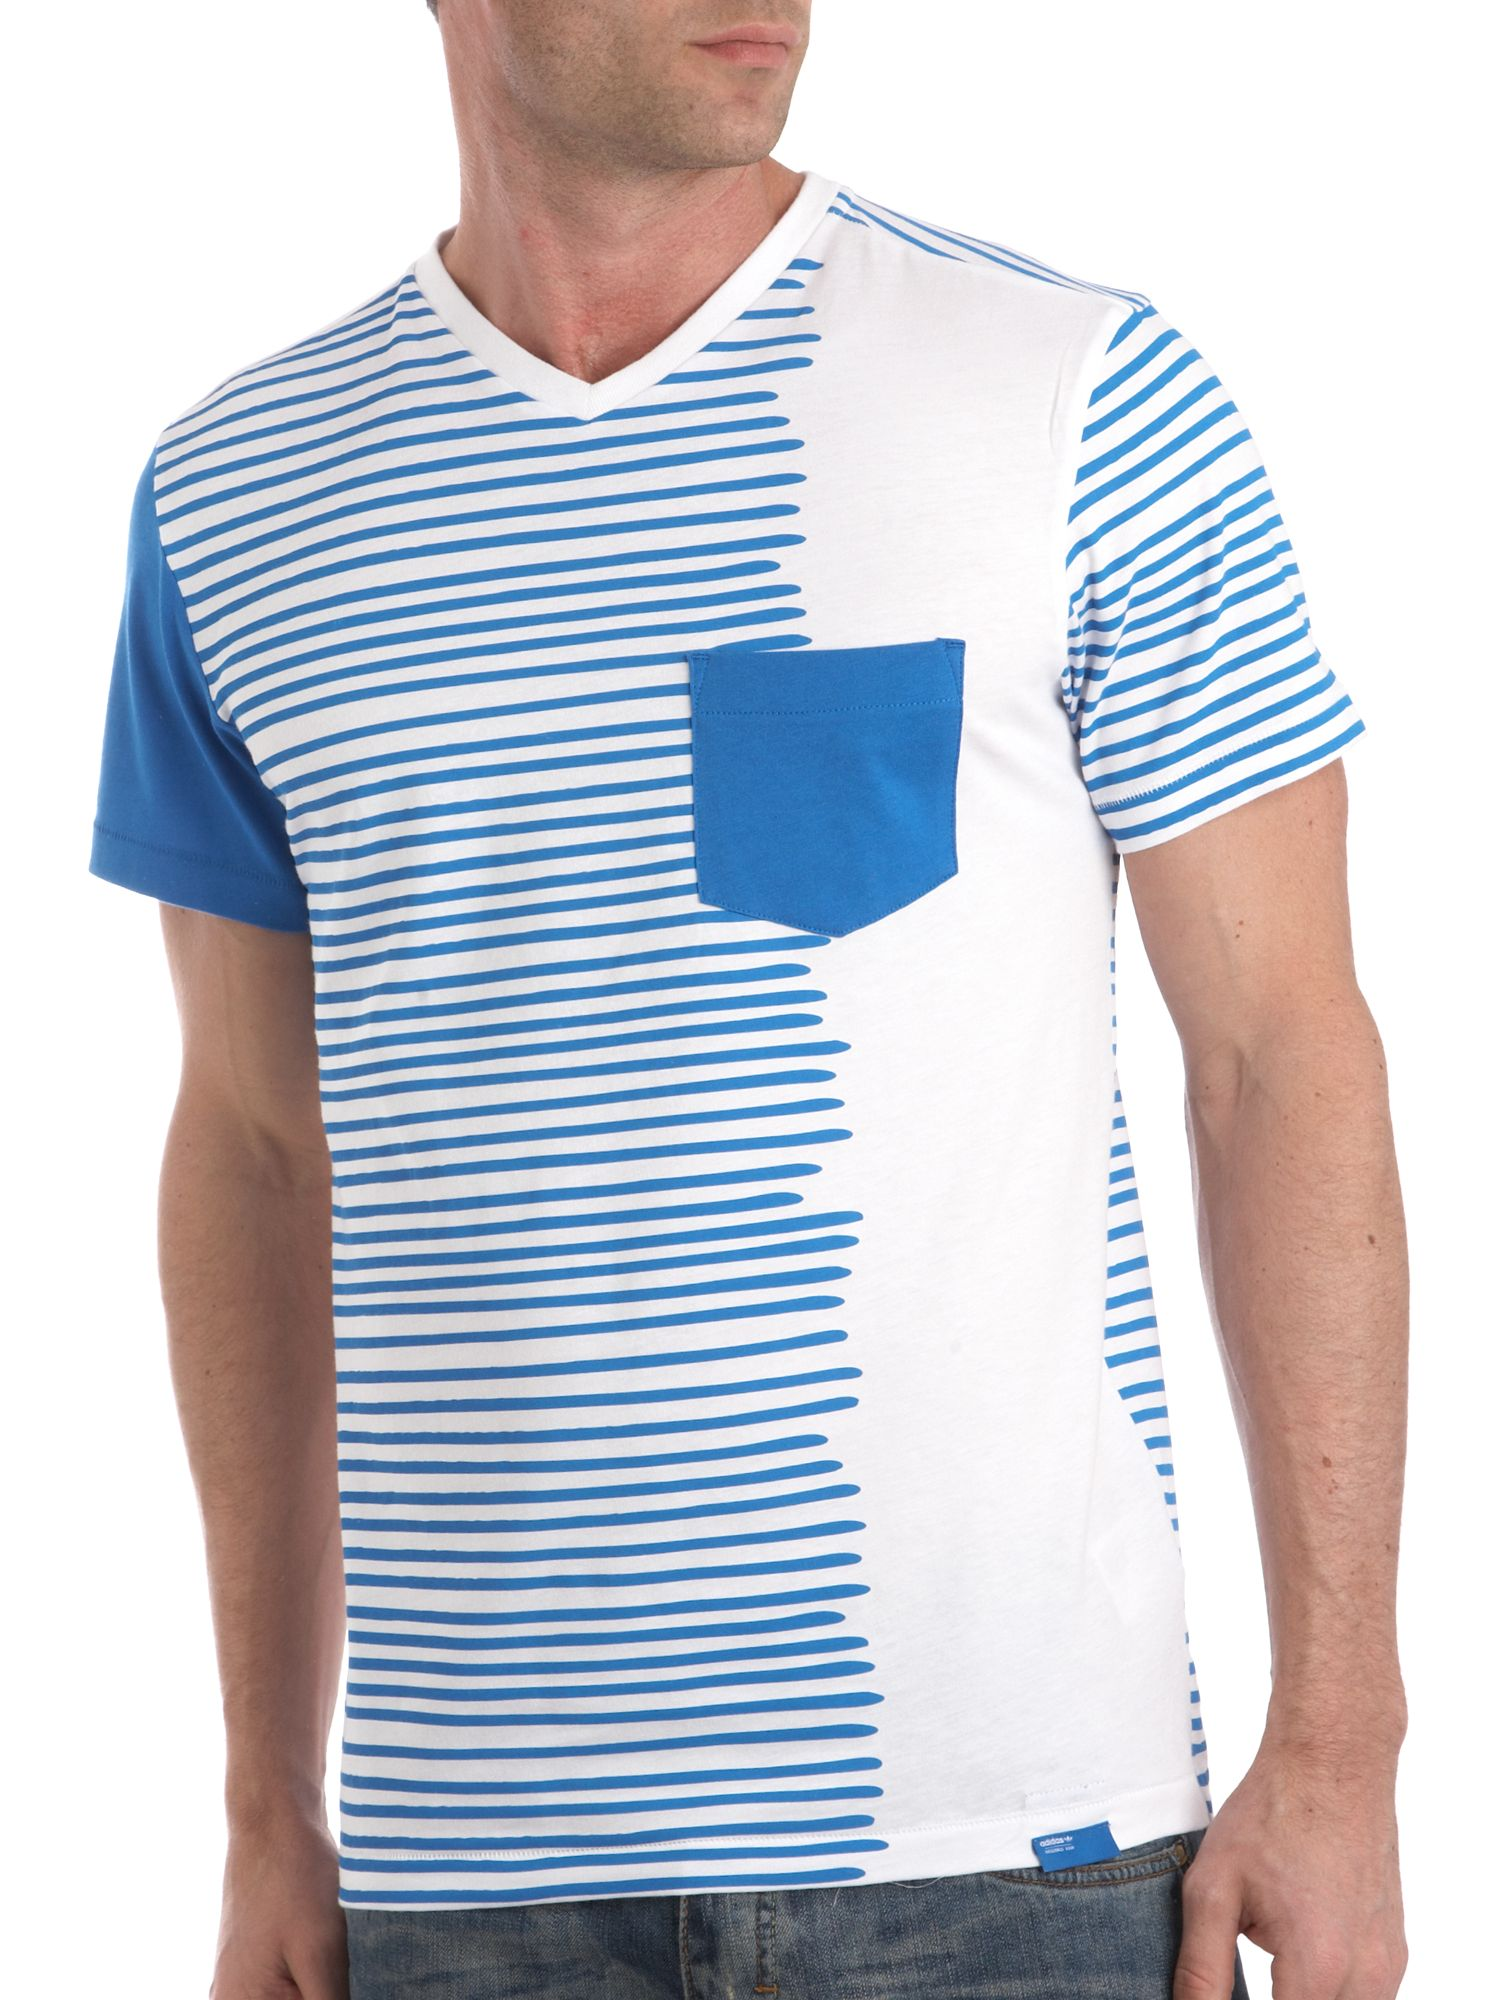 Adidas V-neck stripe T-shirt with pocket product image